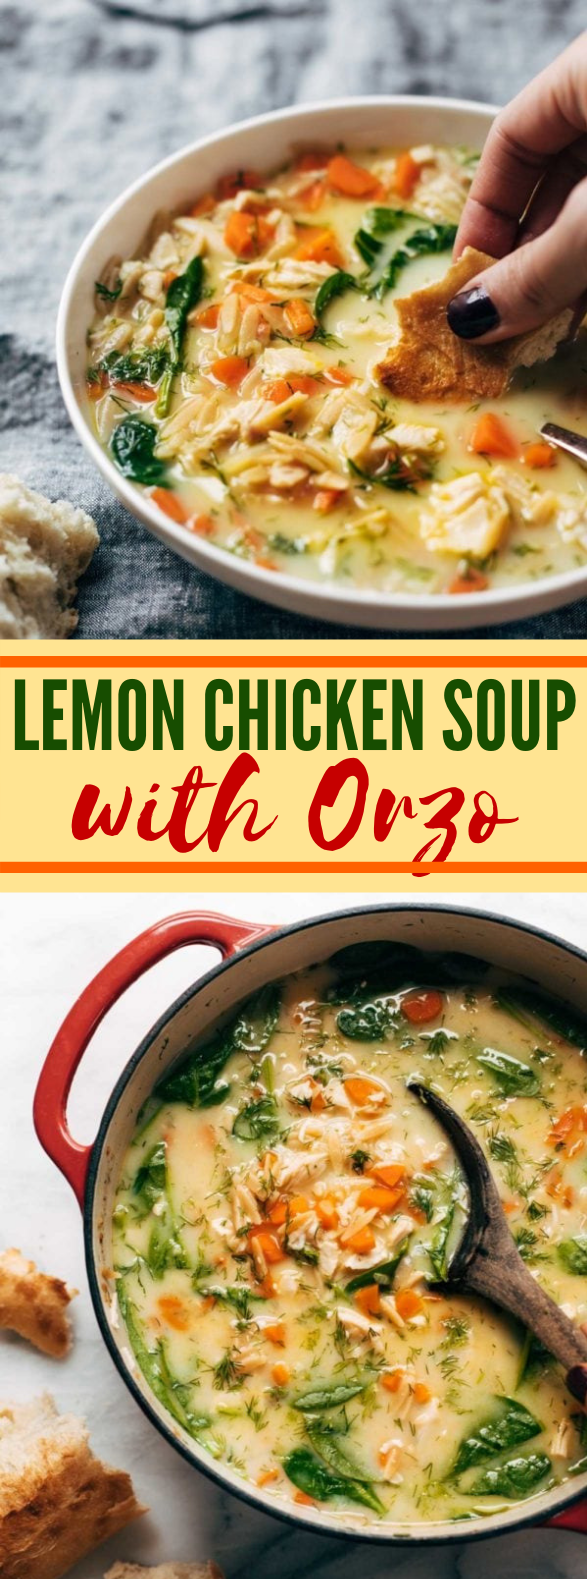 Lemon Chicken Soup with Orzo #healthy #healthysoup